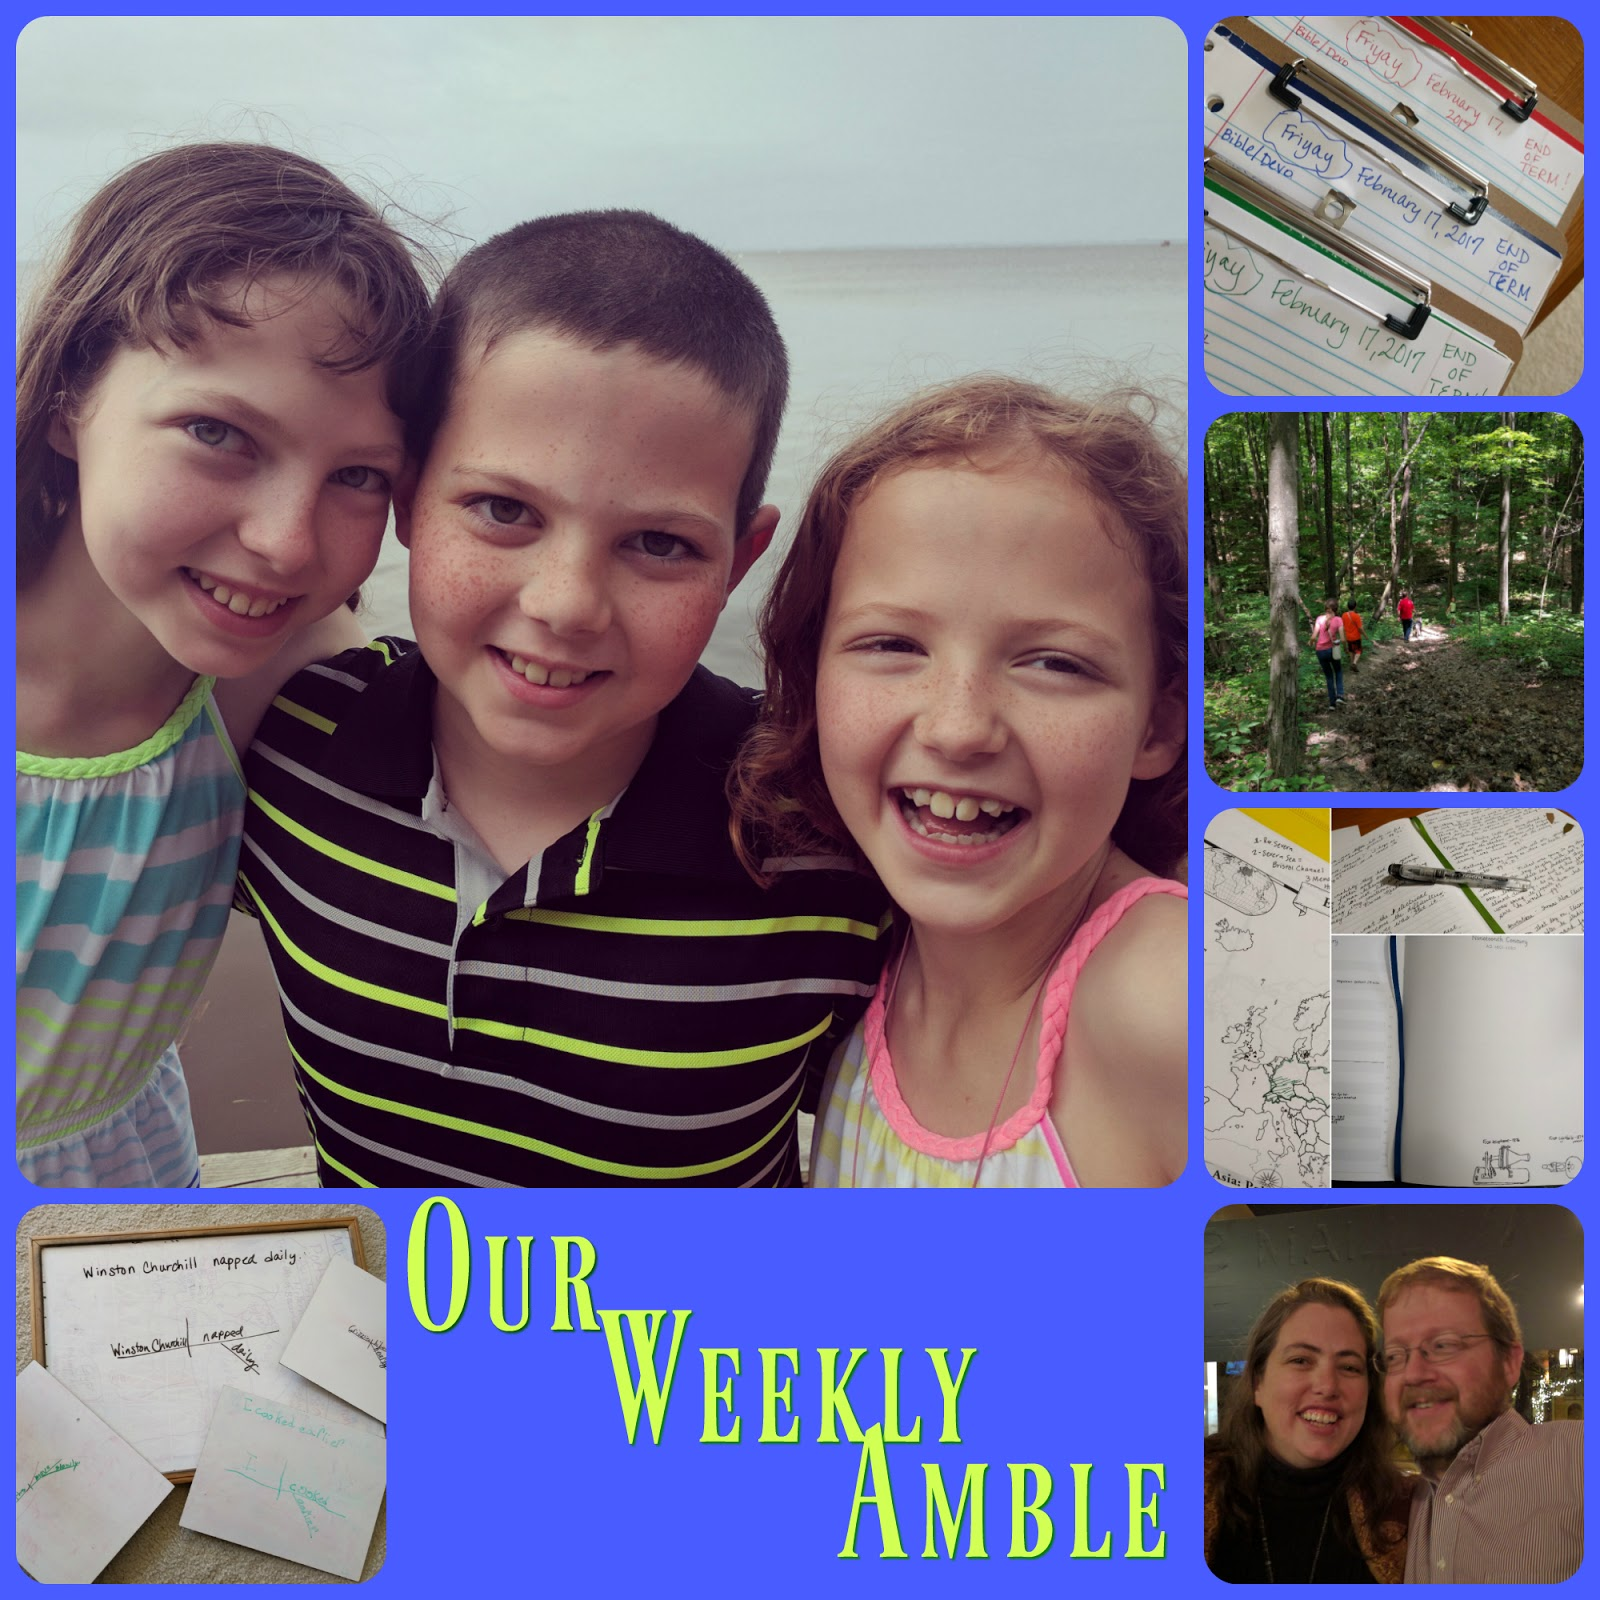 Our Weekly Amble for February 26-March 2 AND March 5-9, 2018